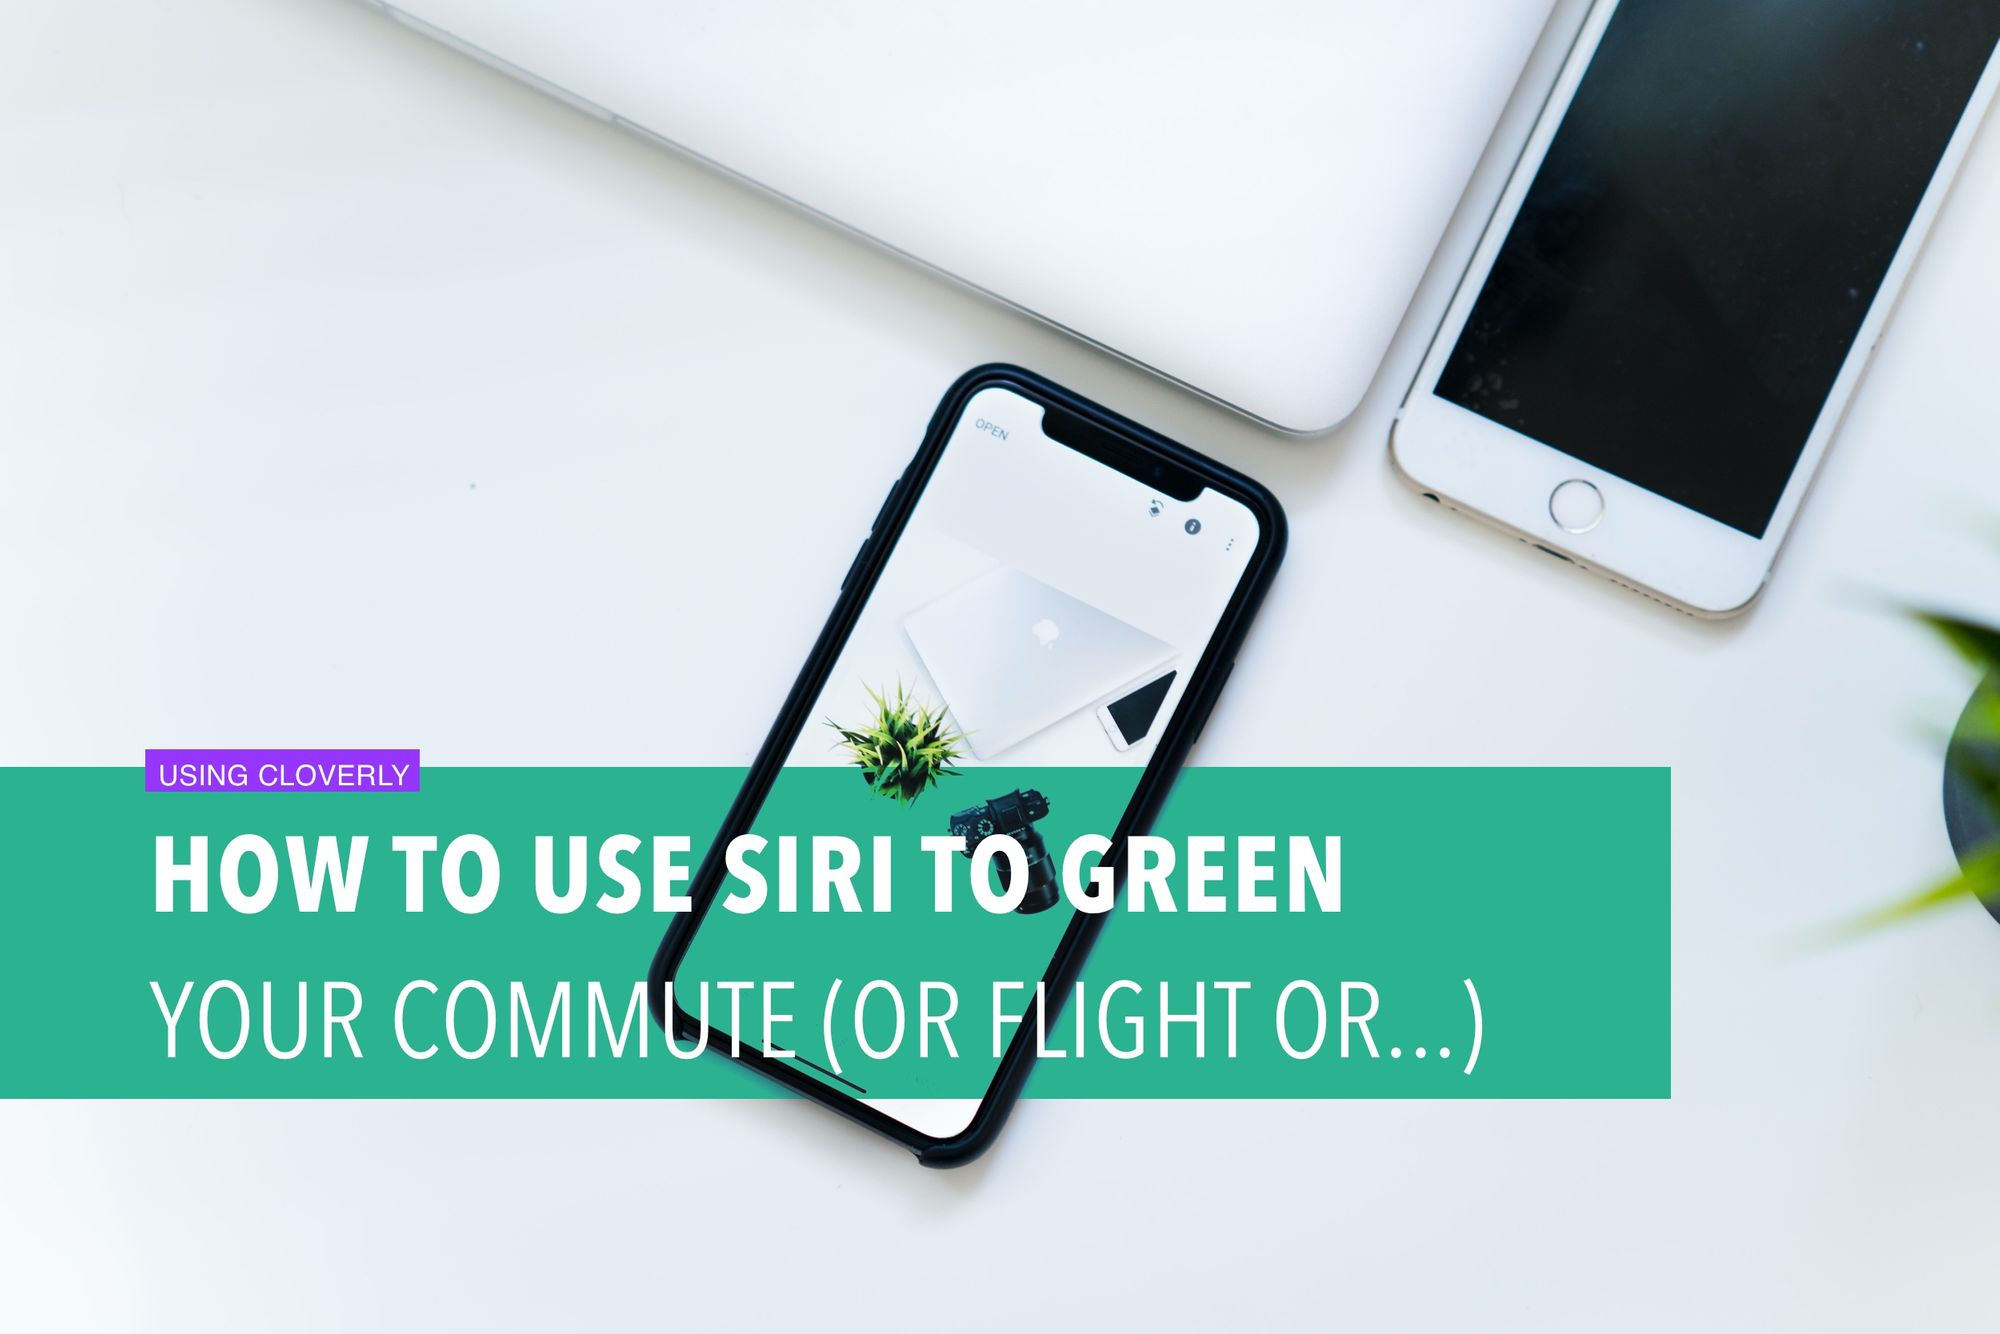 How to use Siri to green your commute (or flight or...)